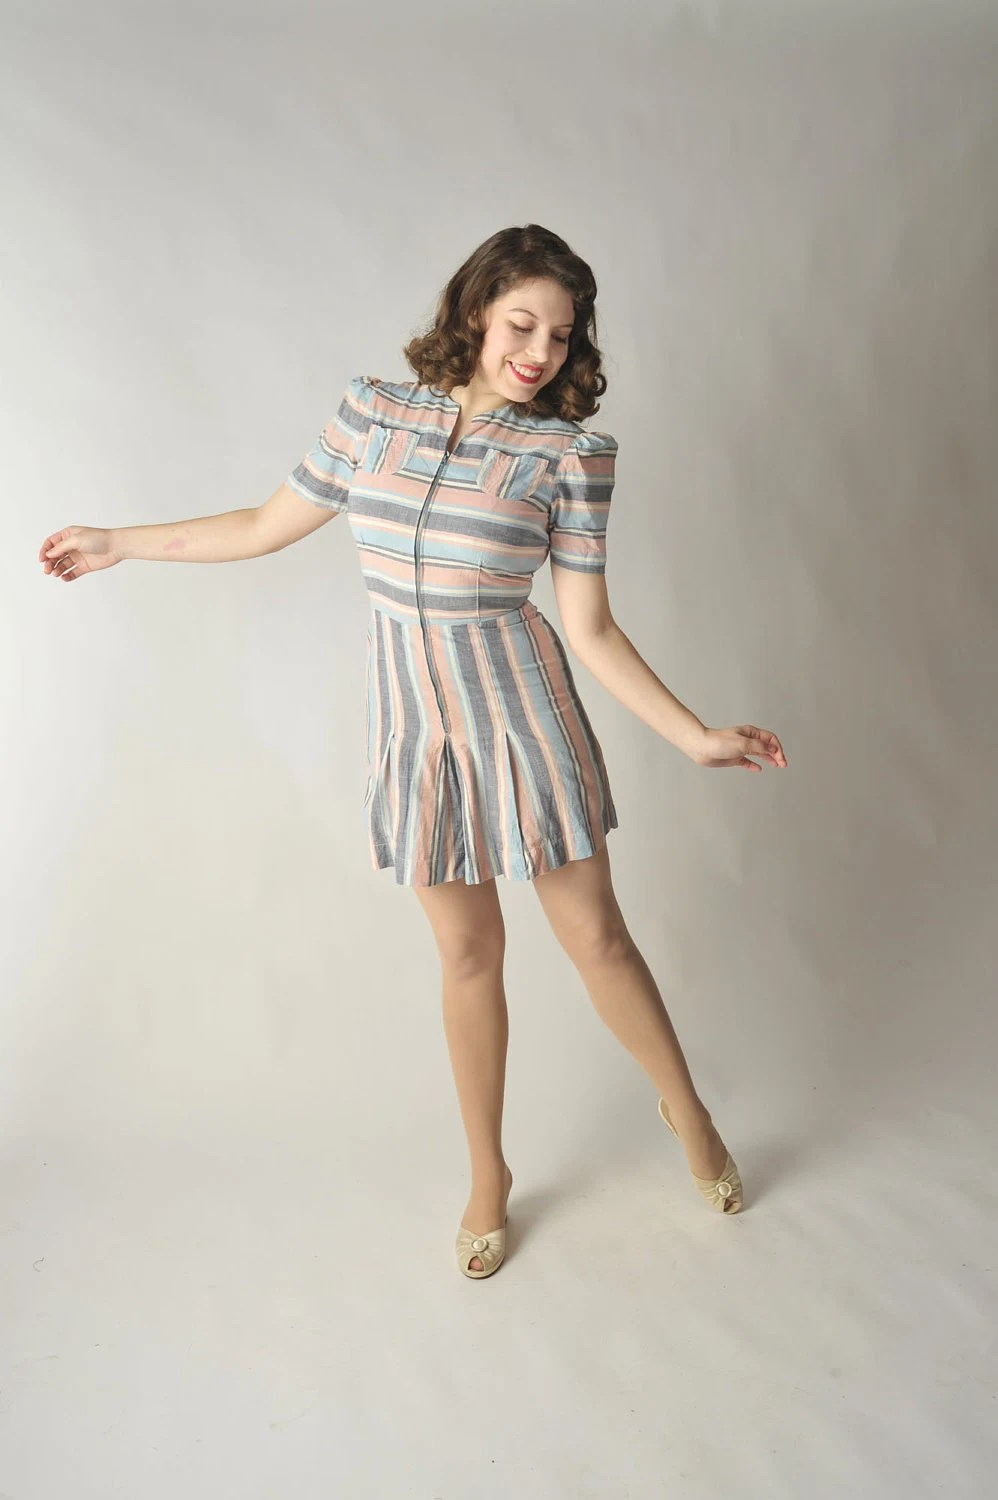 Vintage 1940s Playsuit // Summer Fashion at Fab Gabs: The Rosie Pastel Striped Play Suit